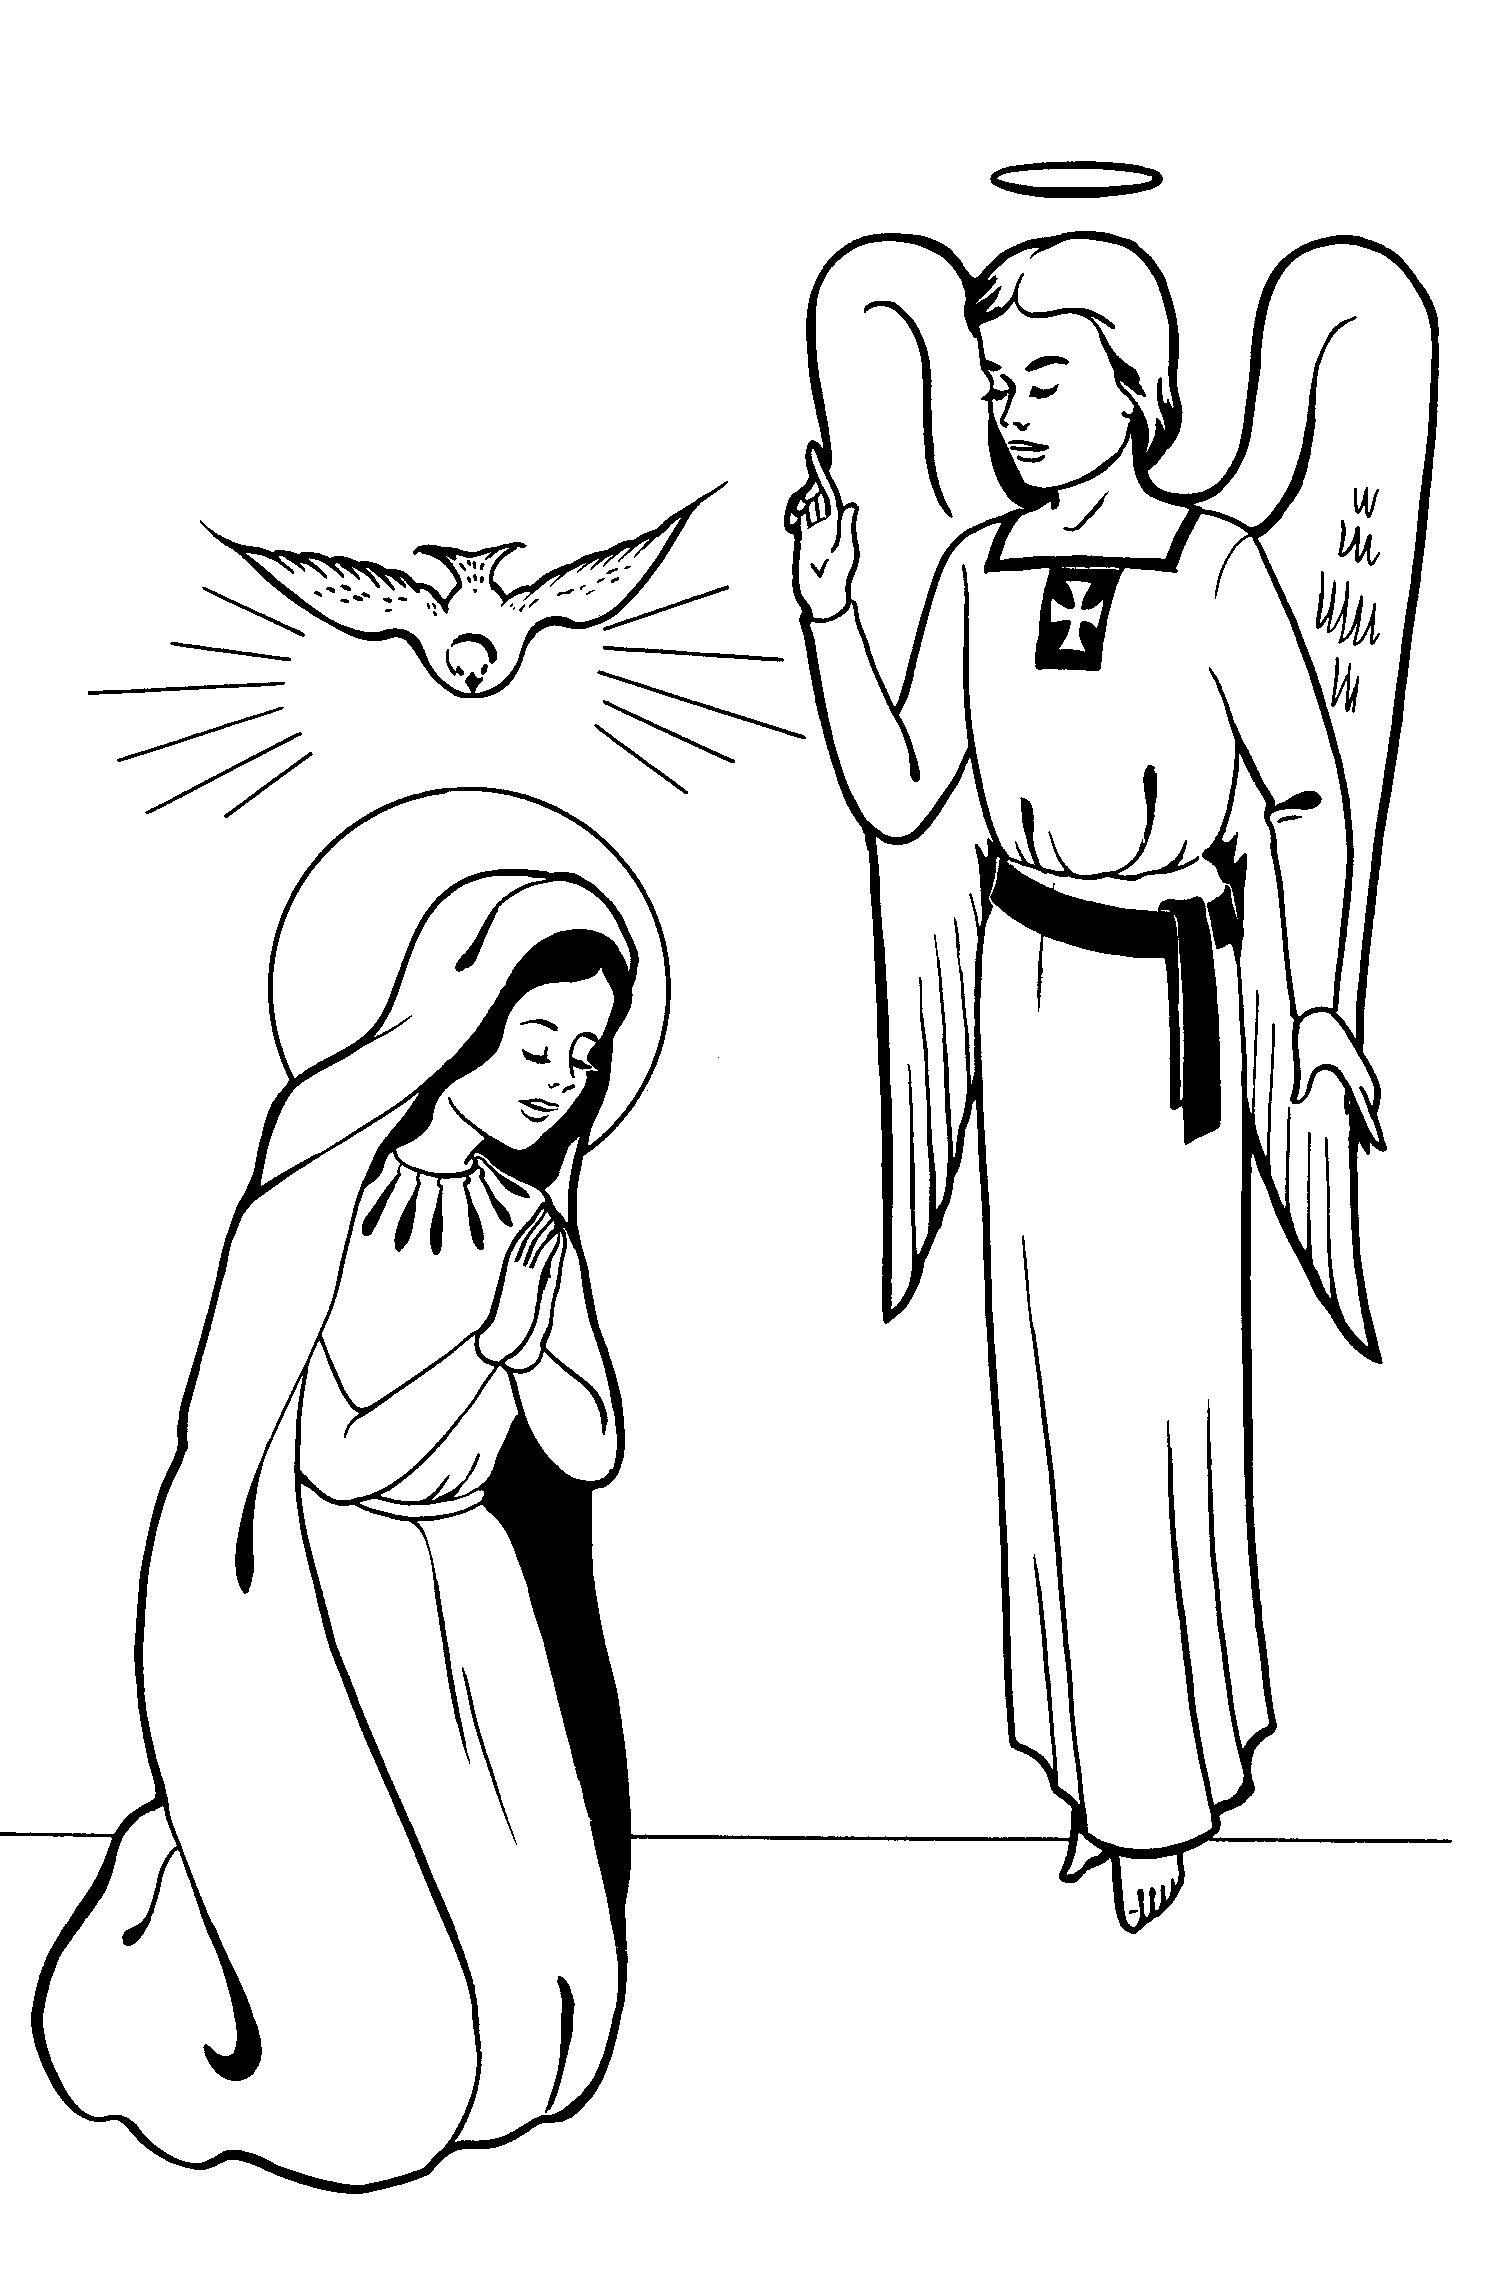 Solemnity of the Annunciation, March 25